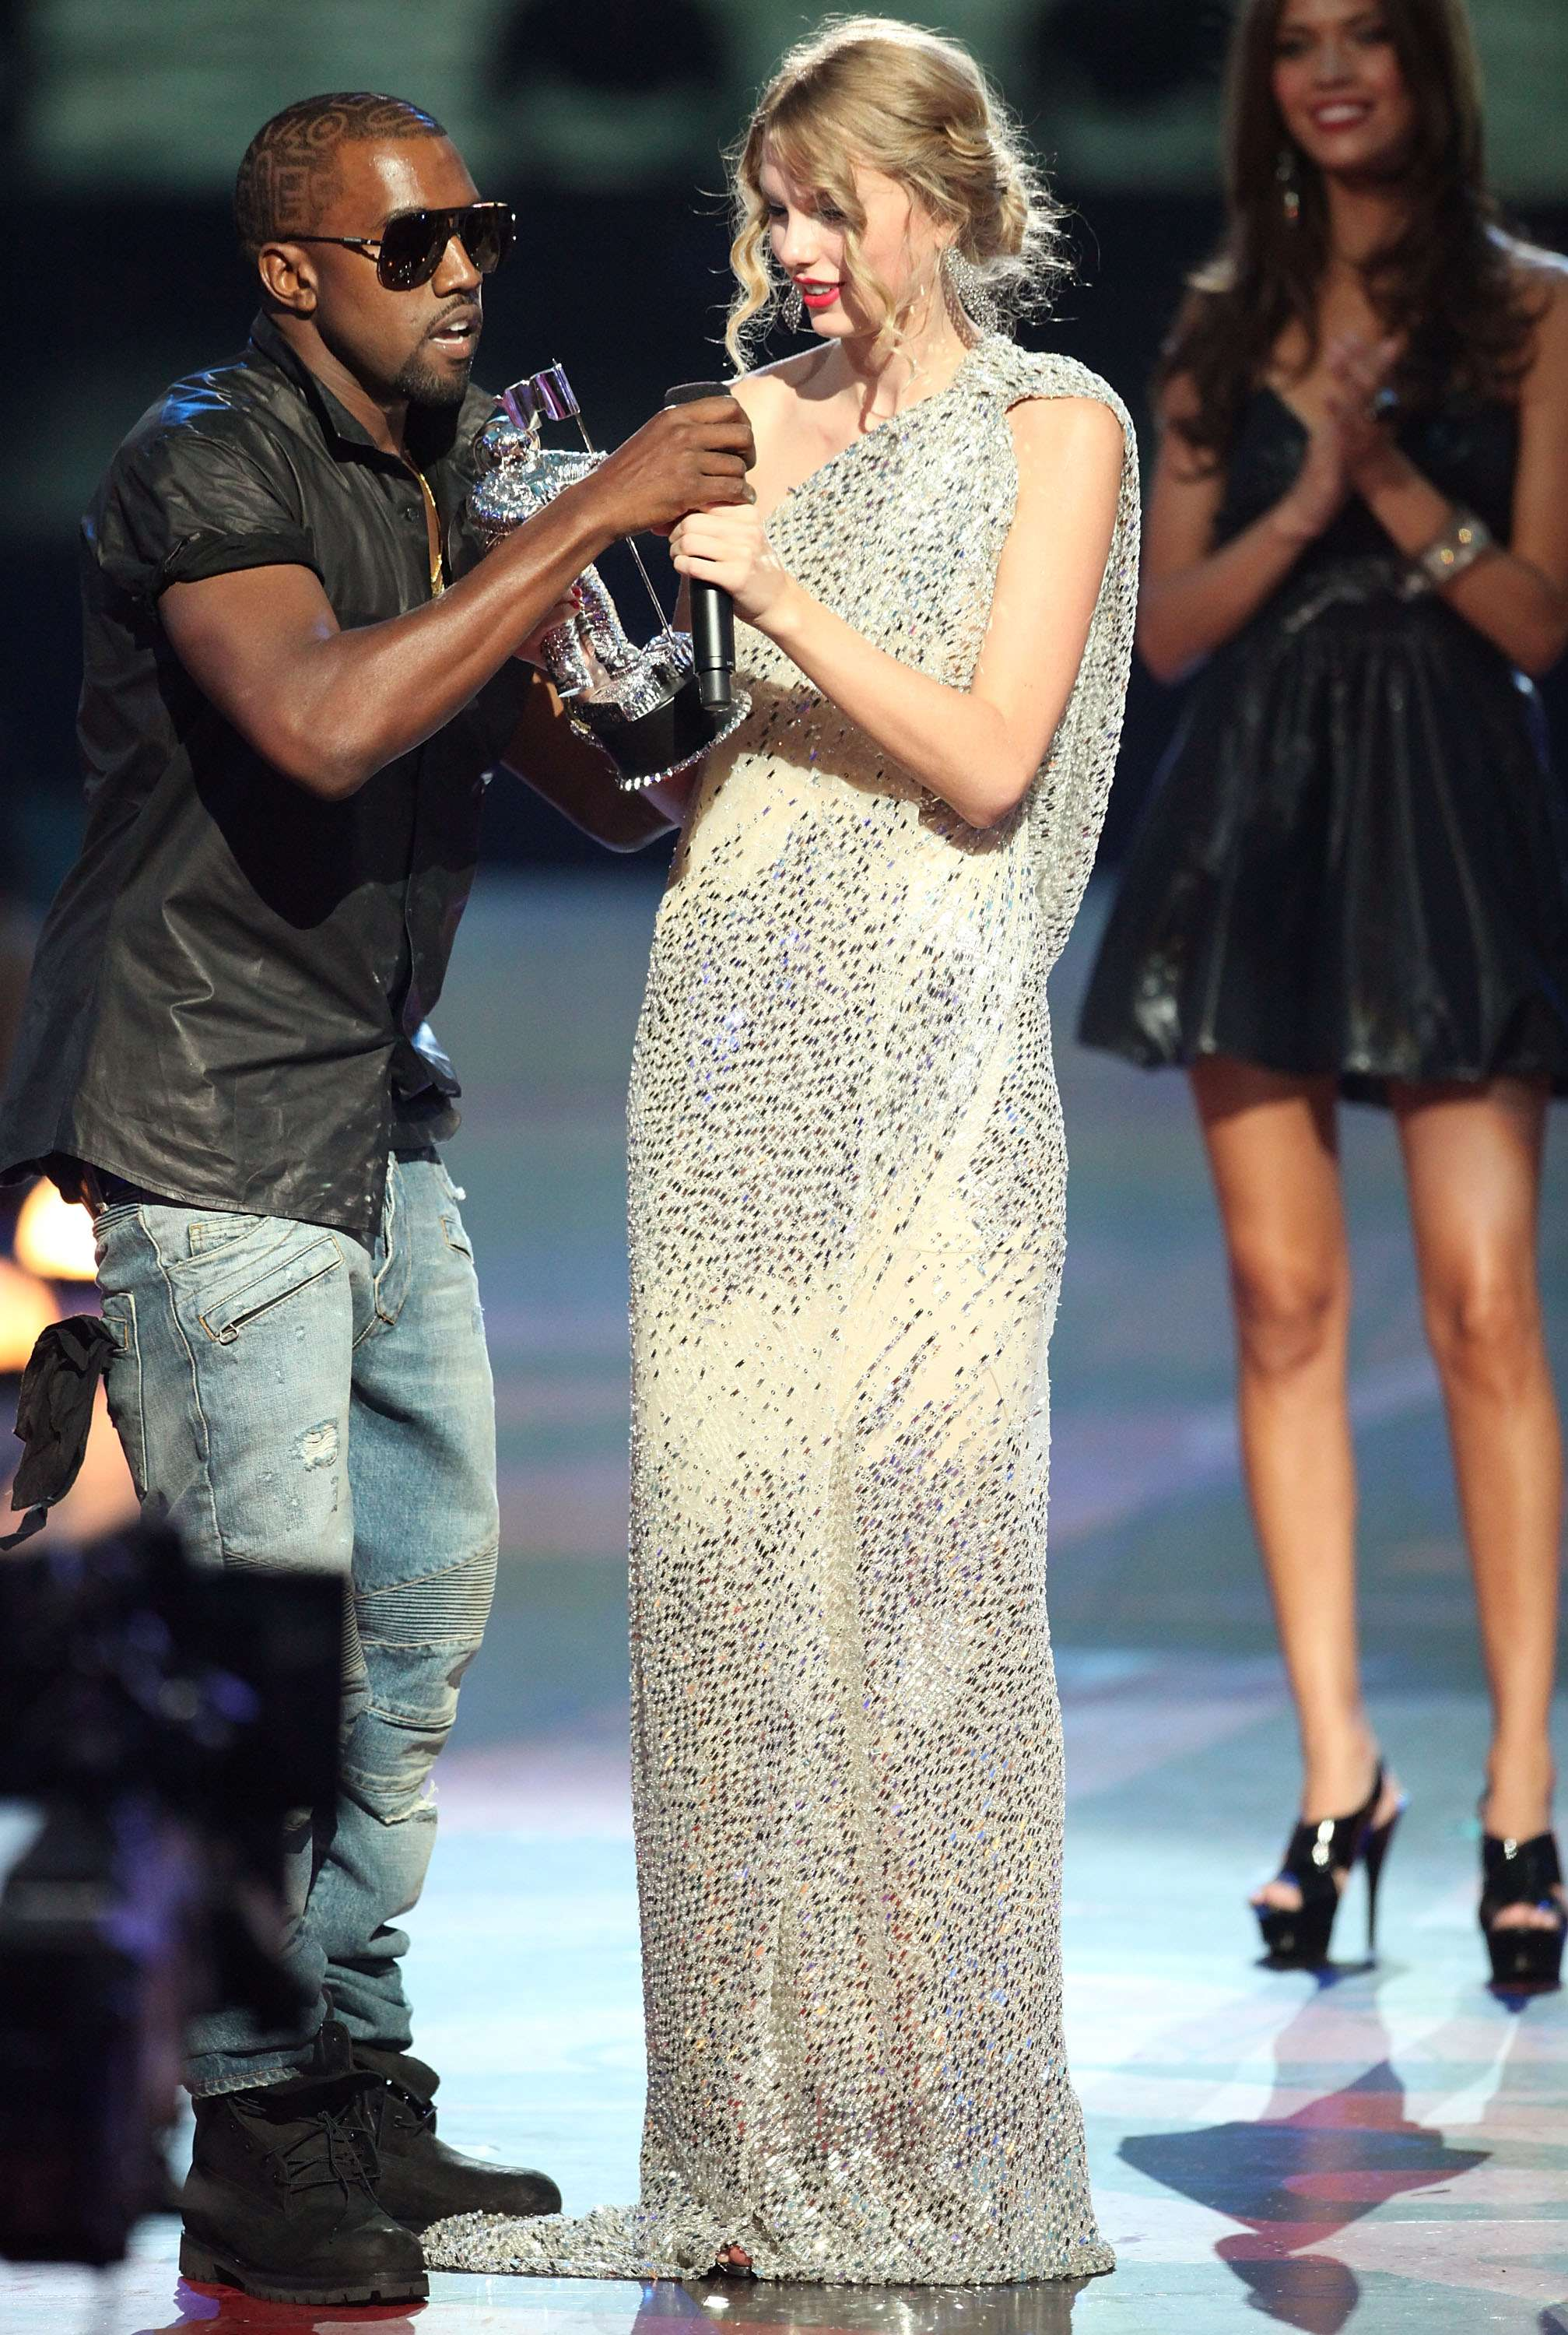 Kanye West avergonzó a Taylor Swift en los Video Music Awards del 2009. Foto: Getty Images